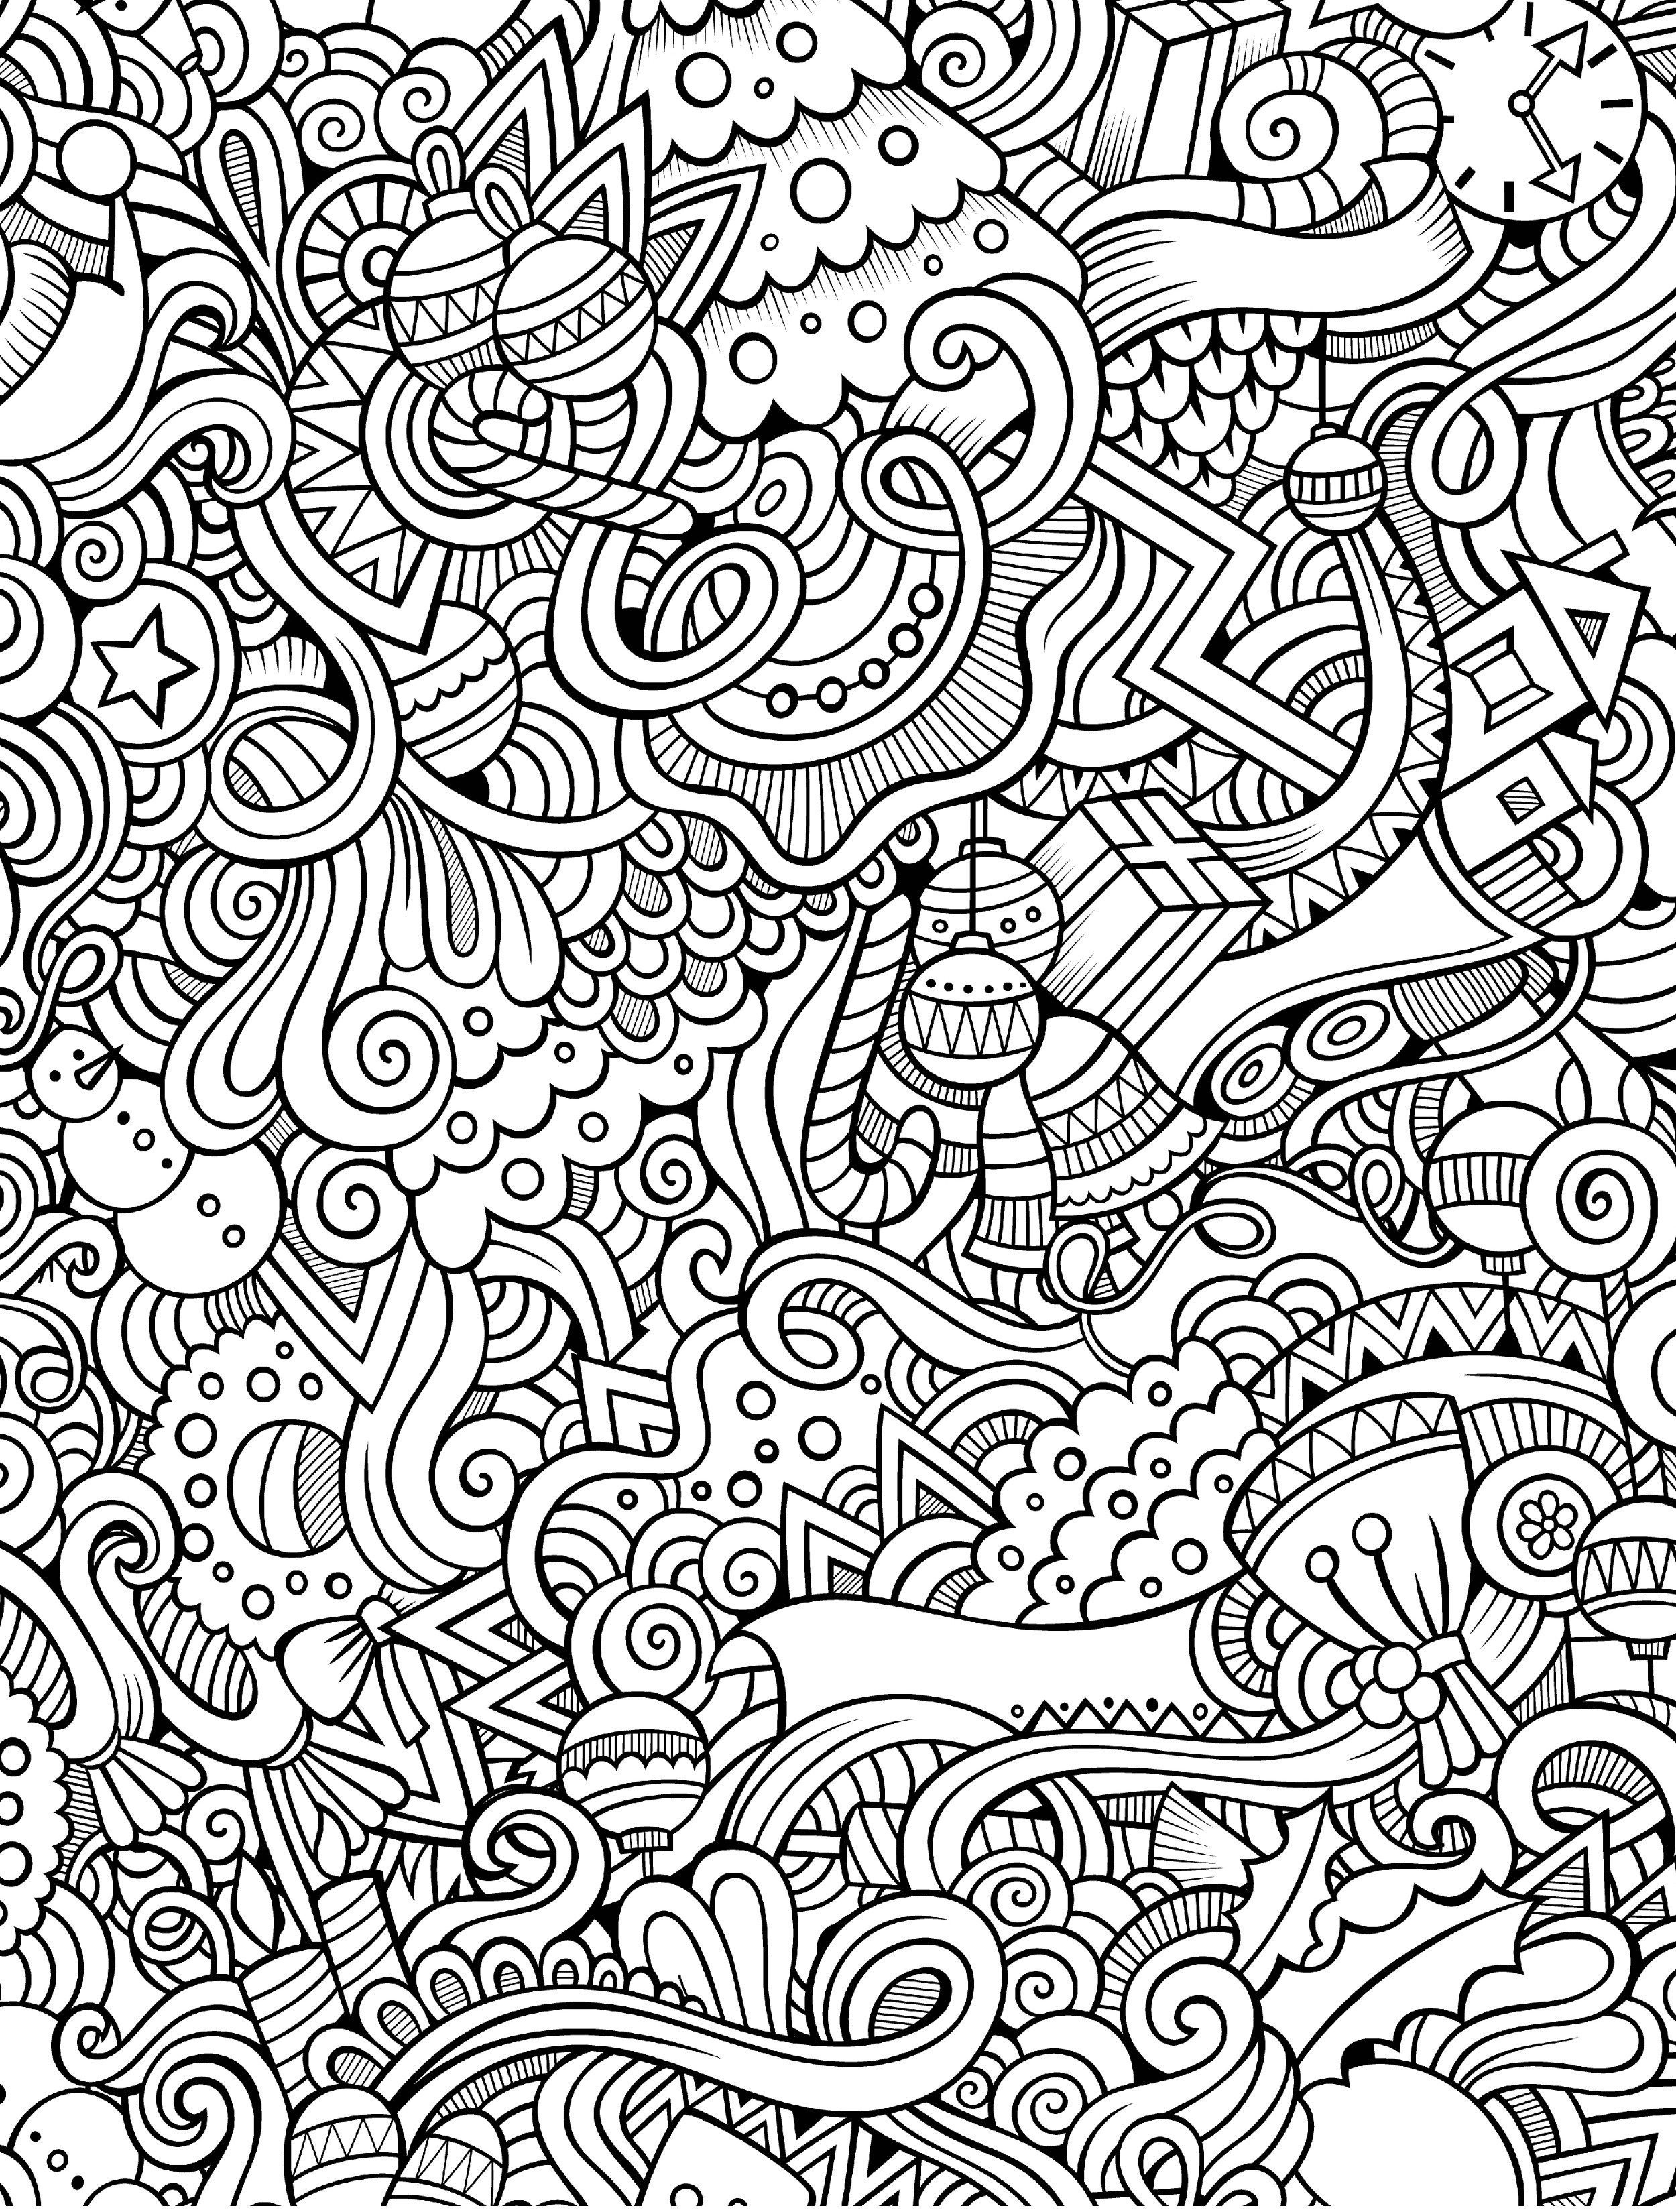 10 Free Printable Holiday Adult Coloring Pages   Coloring Pages - Free Printable Coloring Cards For Adults